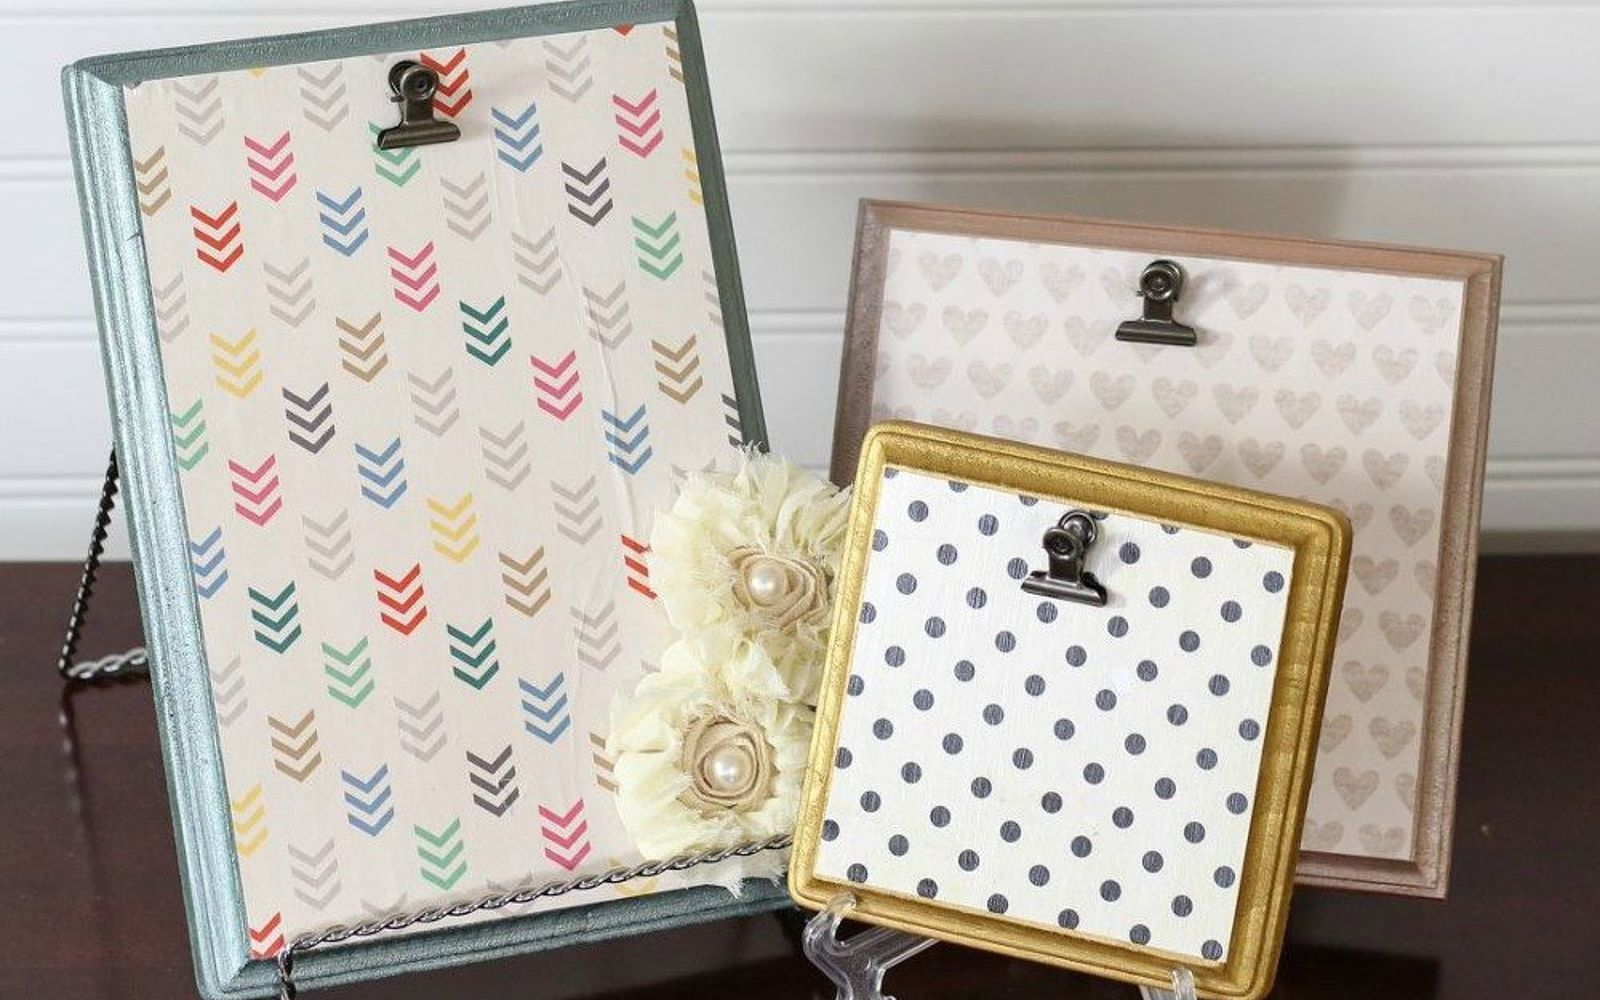 s 9 budget ways to add gleaming metallic accents, crafts, home decor, Outline wood memo holders in metallic hues